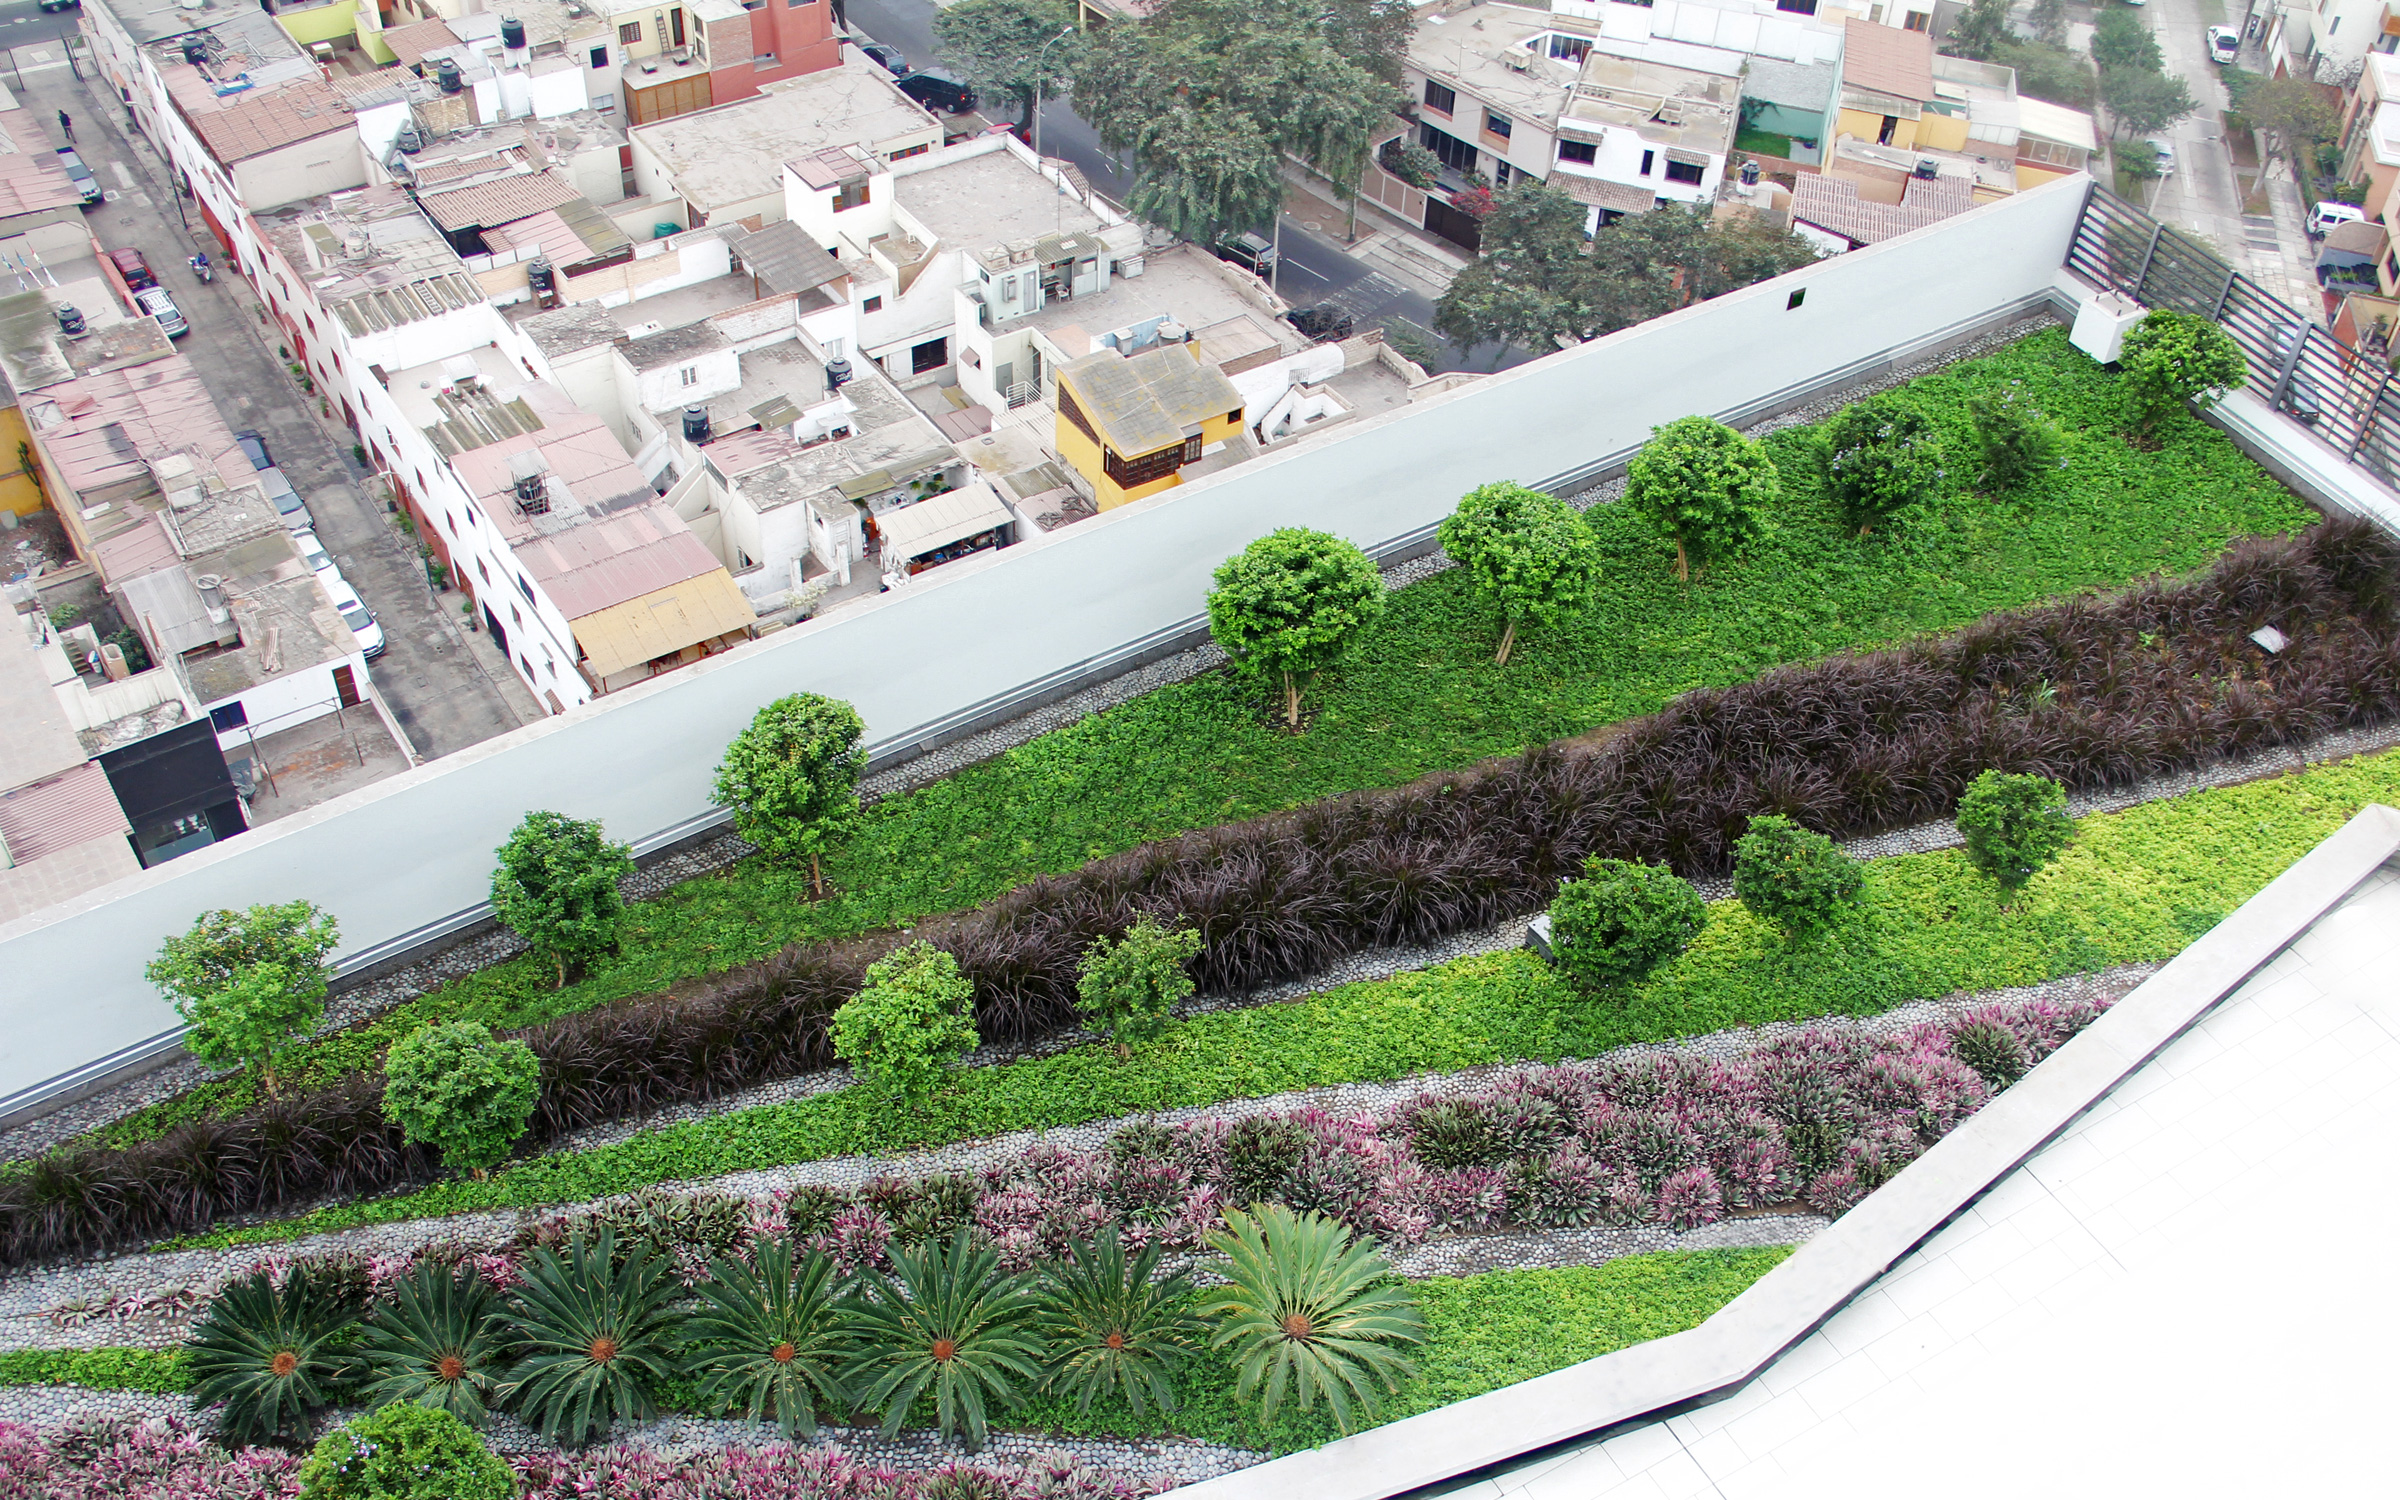 Roof garden with small trees, palm trees, shrubs and ornamental grasses